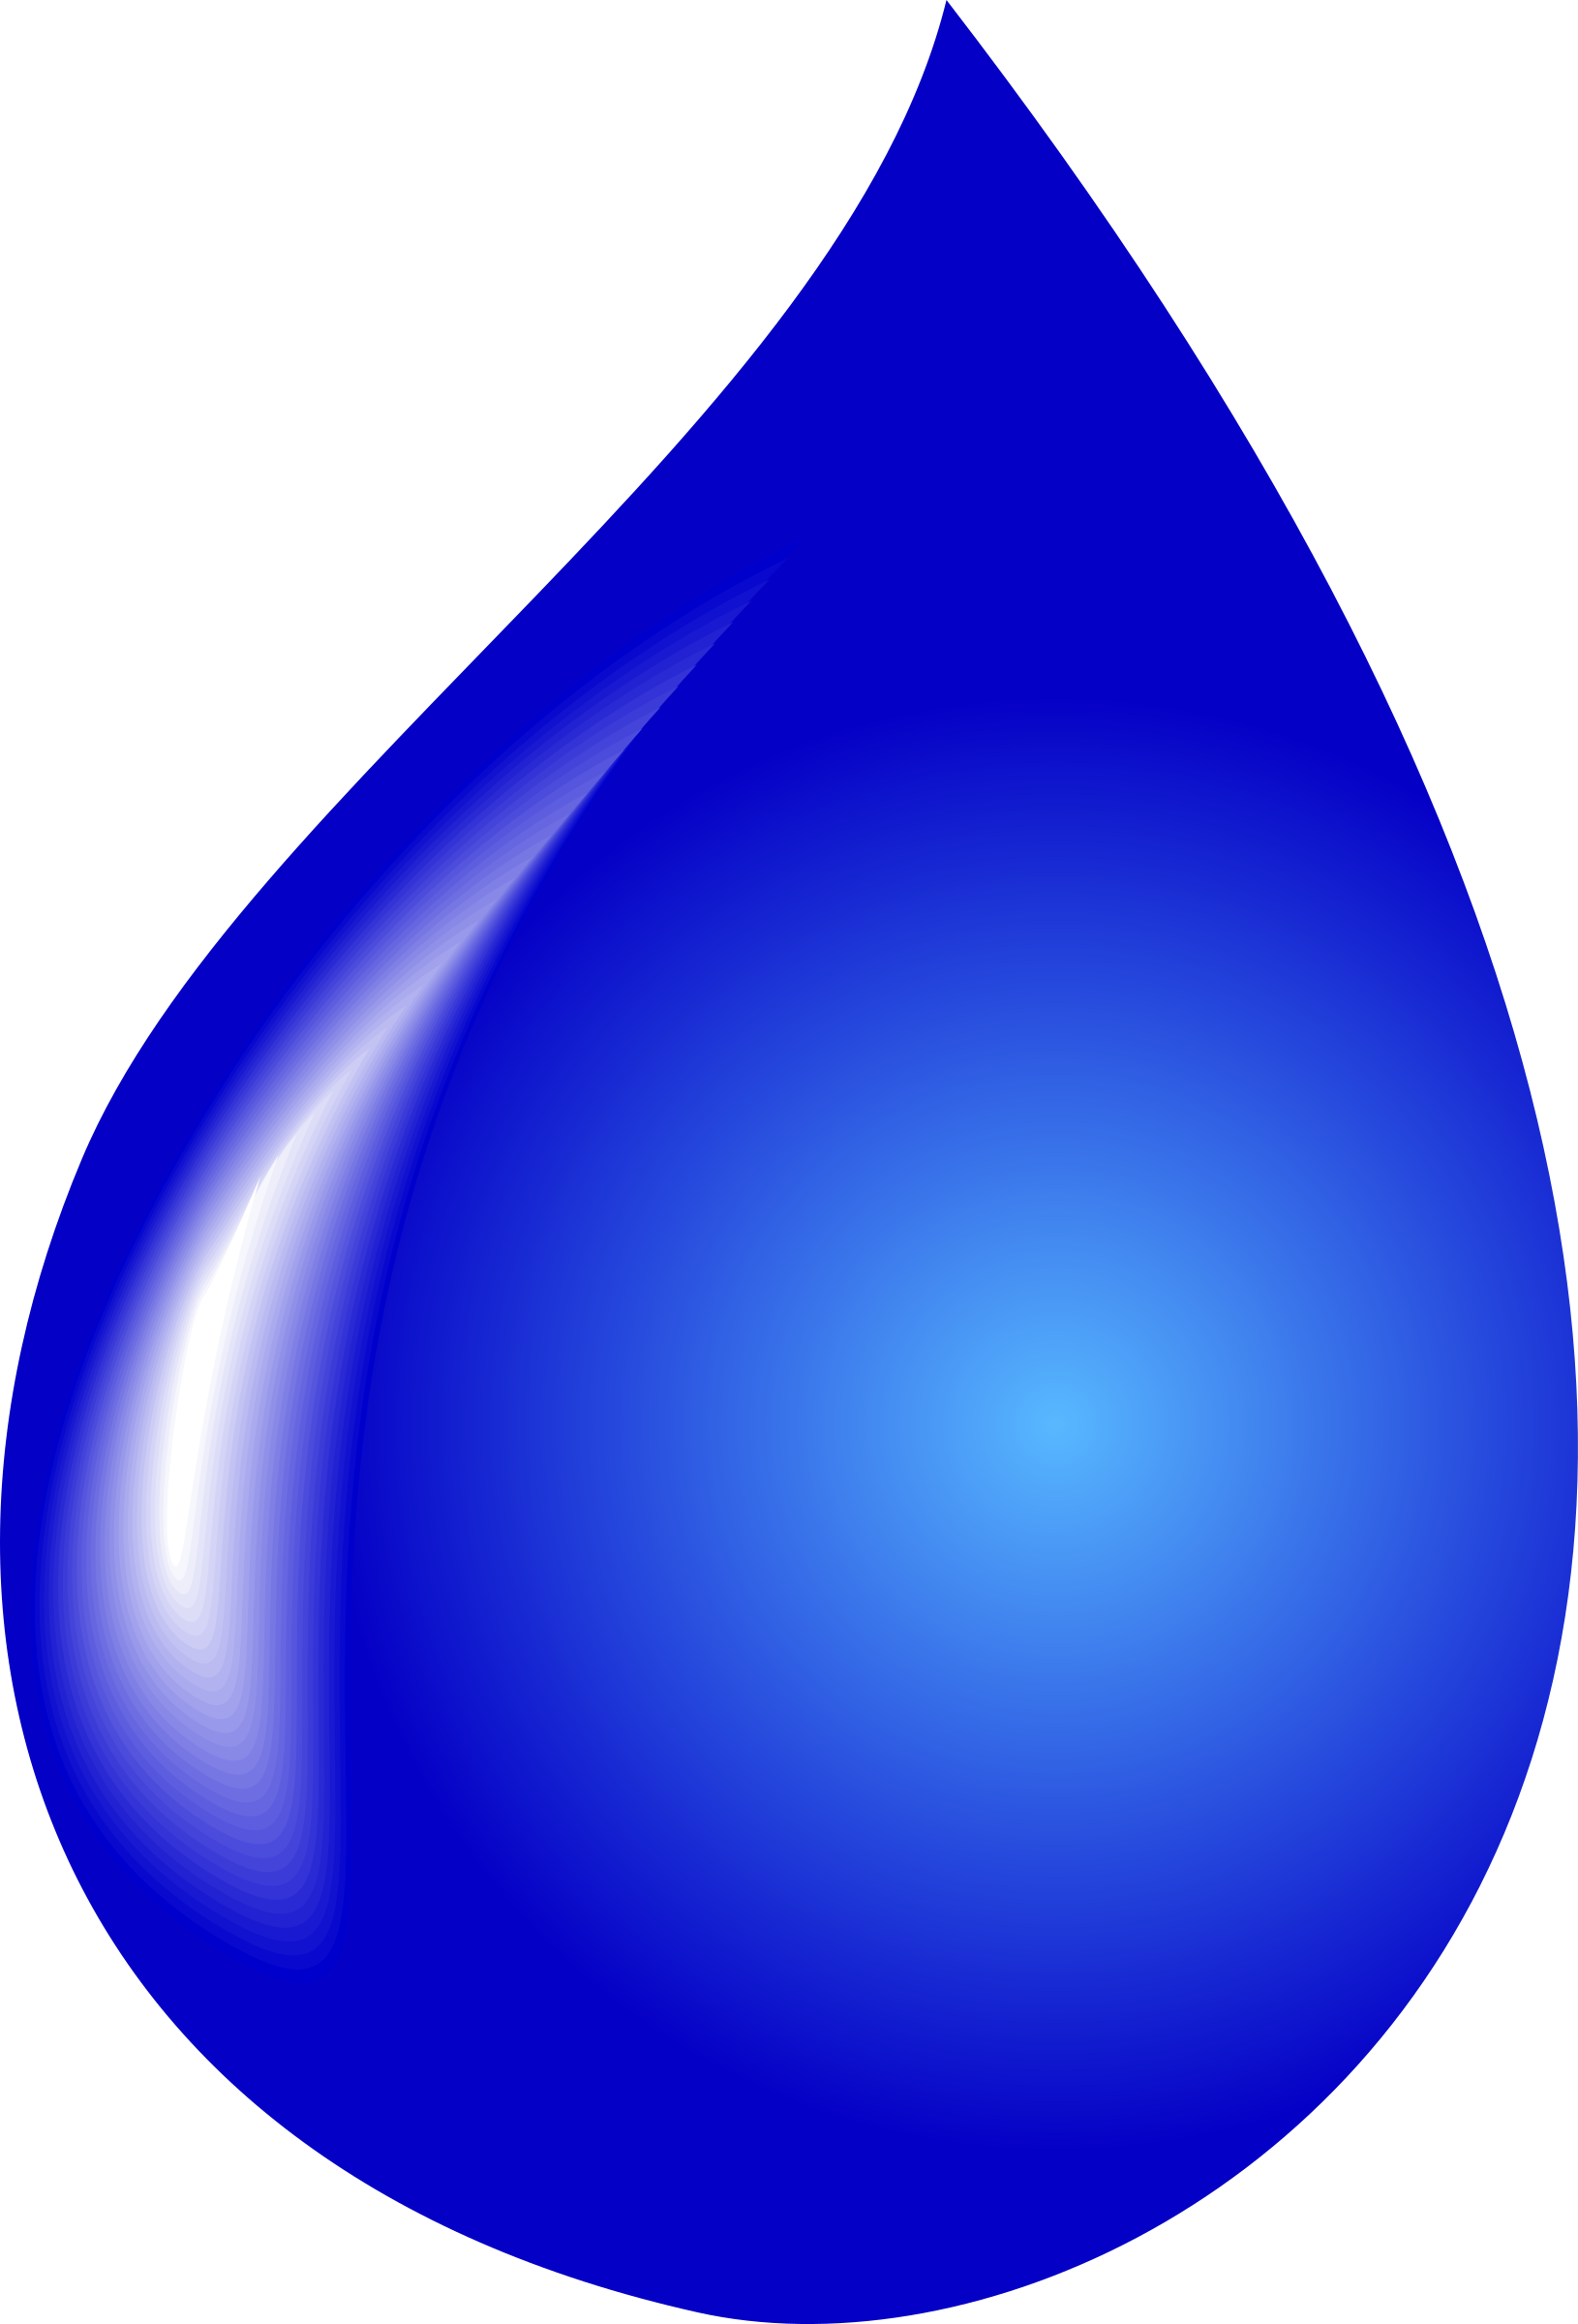 Clipart - water drop